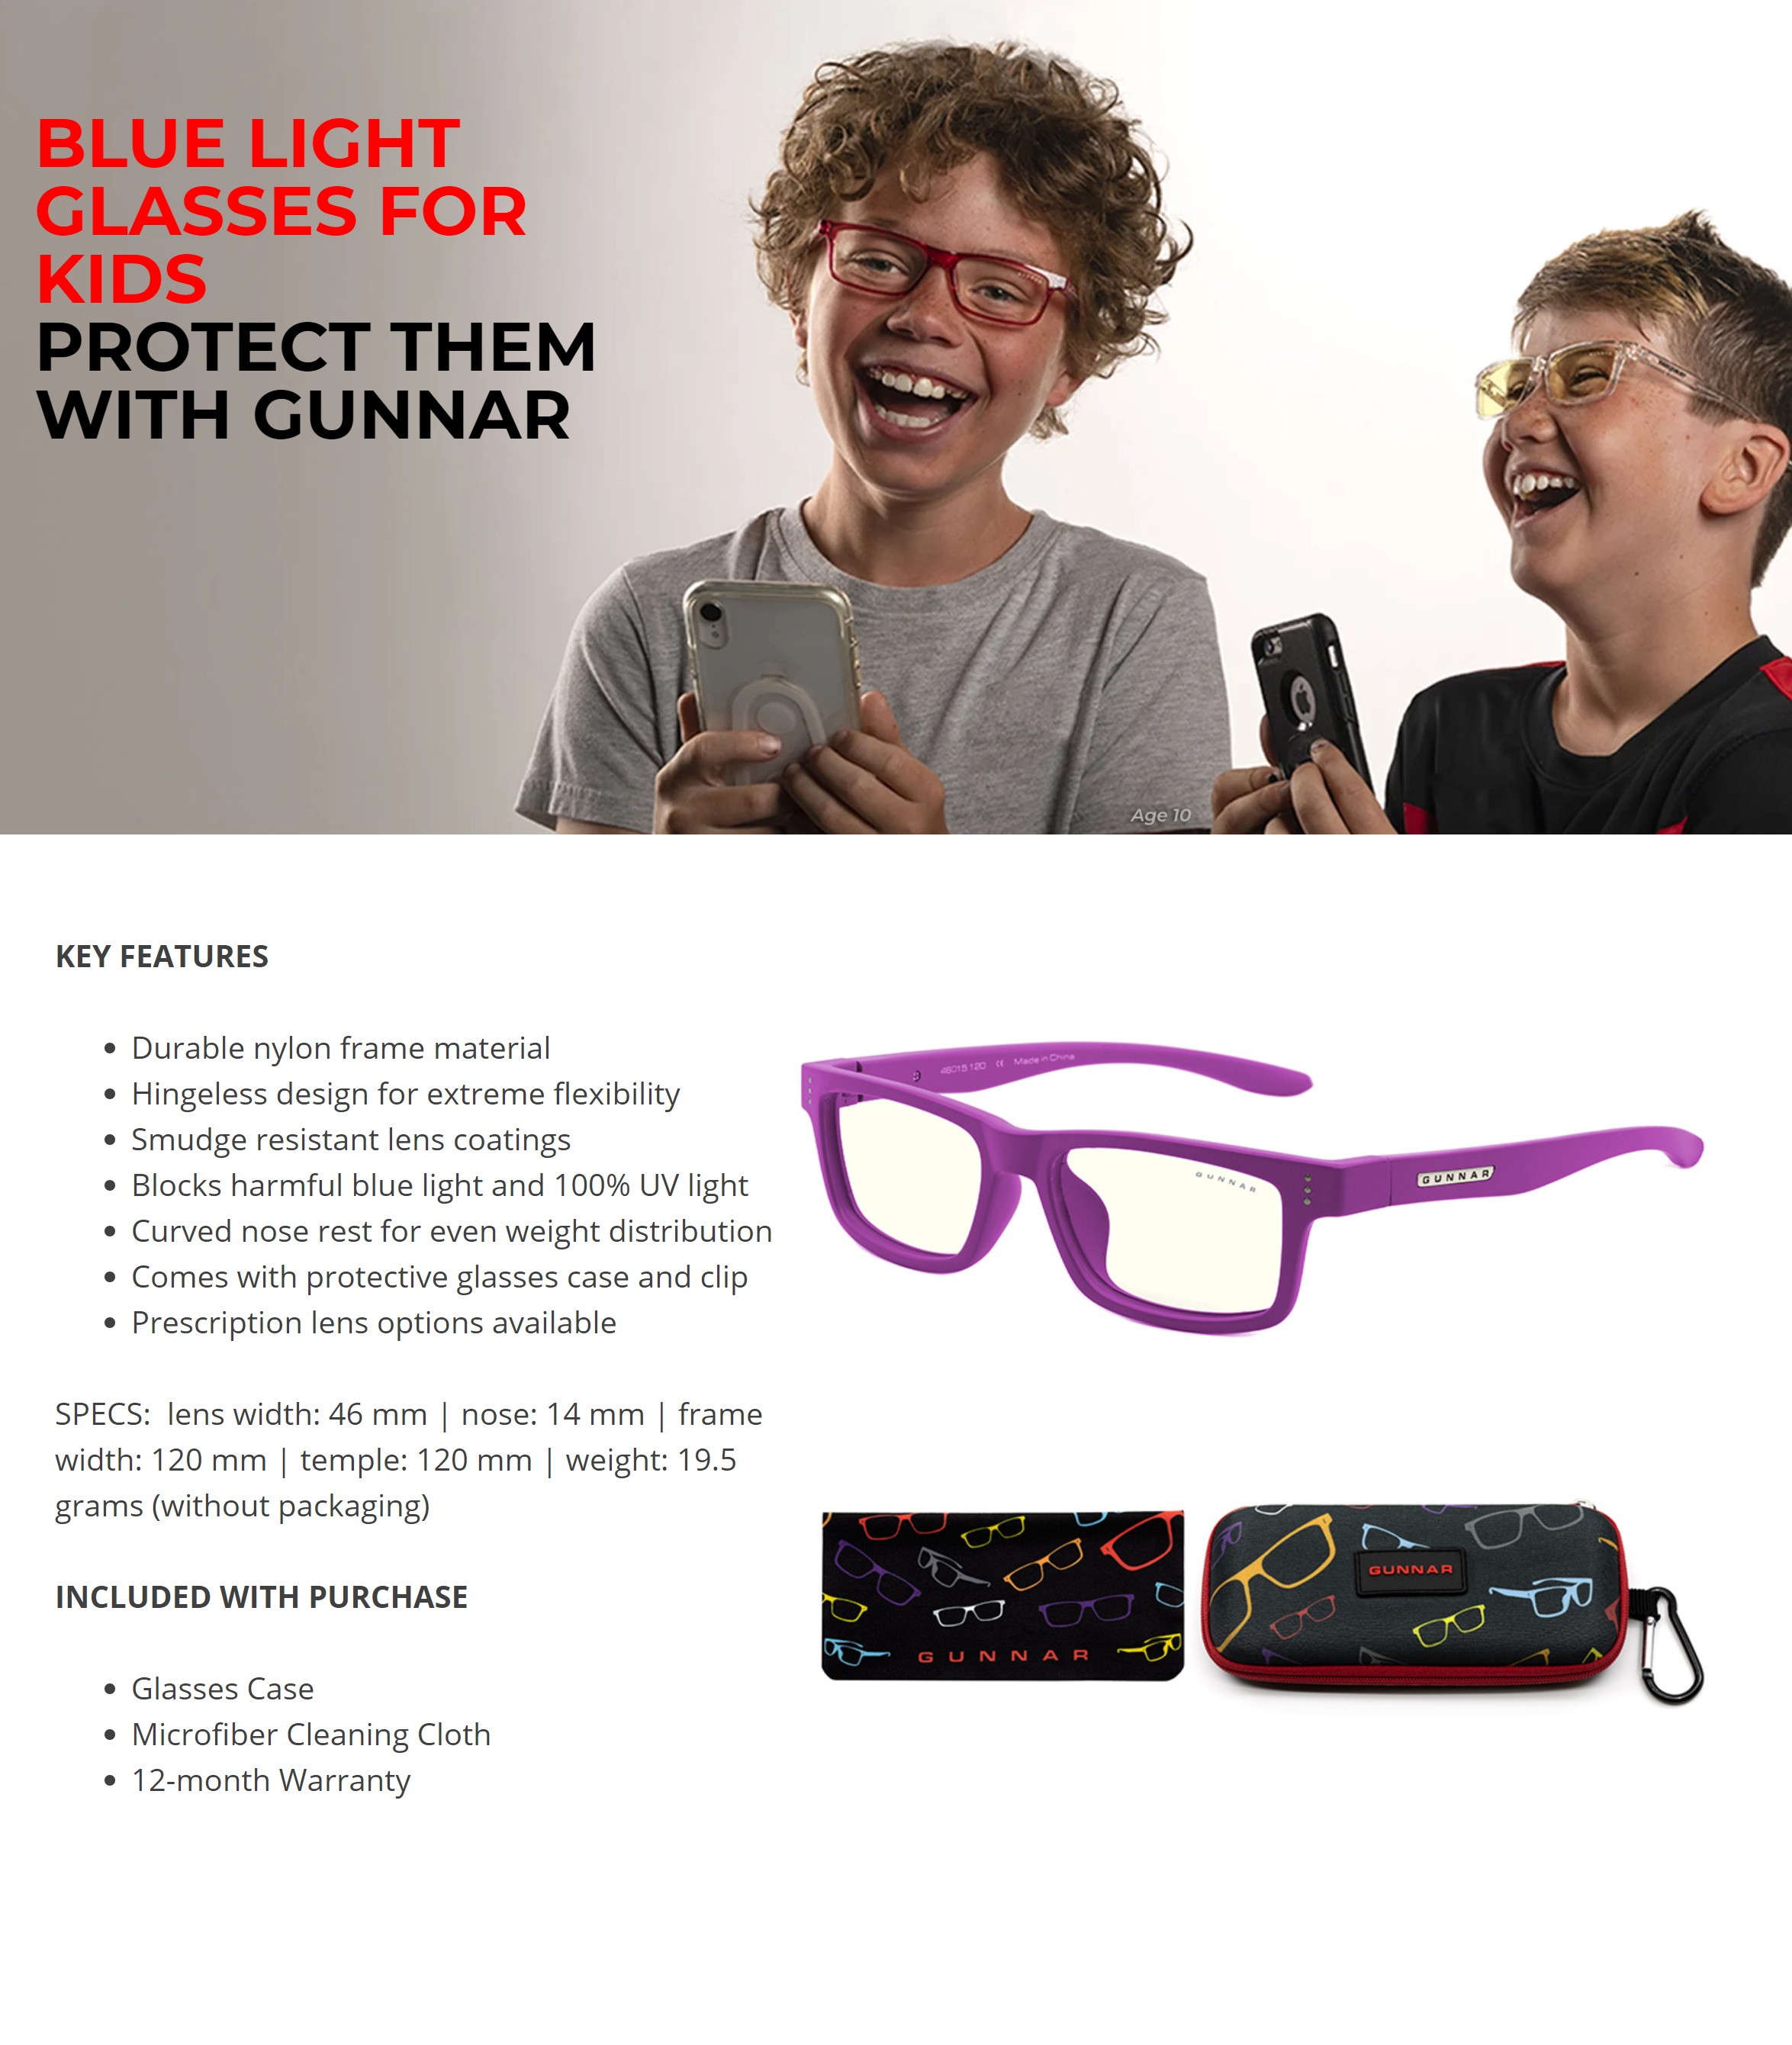 A large marketing image providing additional information about the product Gunnar Cruz Kids Clear Magenta Indoor Digital Eyewear Small - Additional alt info not provided